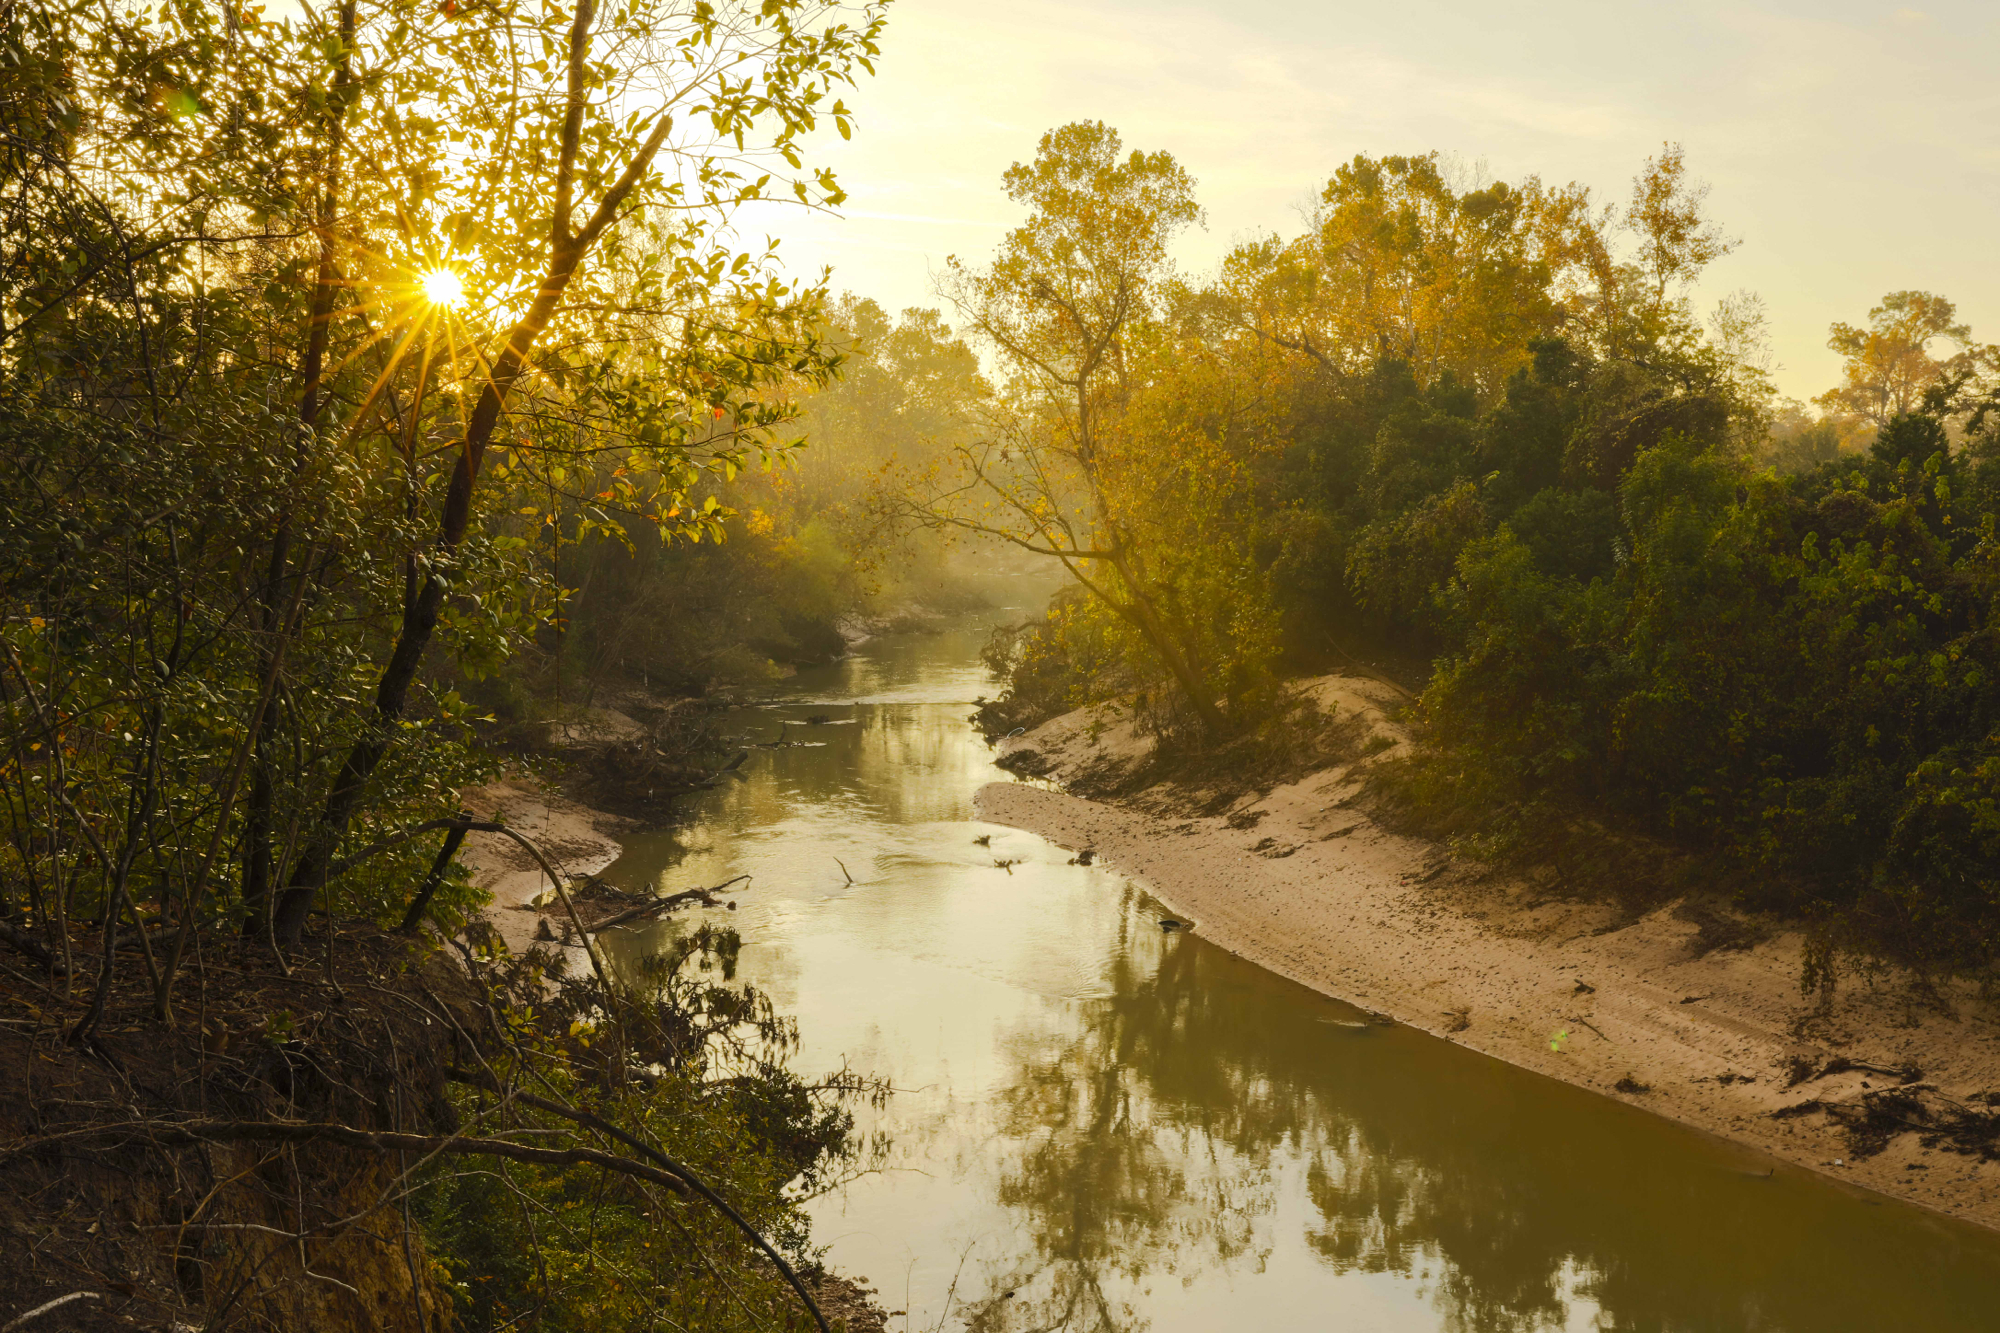 Sun rising over a bend of Buffalo Bayou at low water on Dec. 10, 2015. Photo taken by Jim Olive from a high bluff in Memorial Park looking downstream with the River Oaks Country Club on the right.